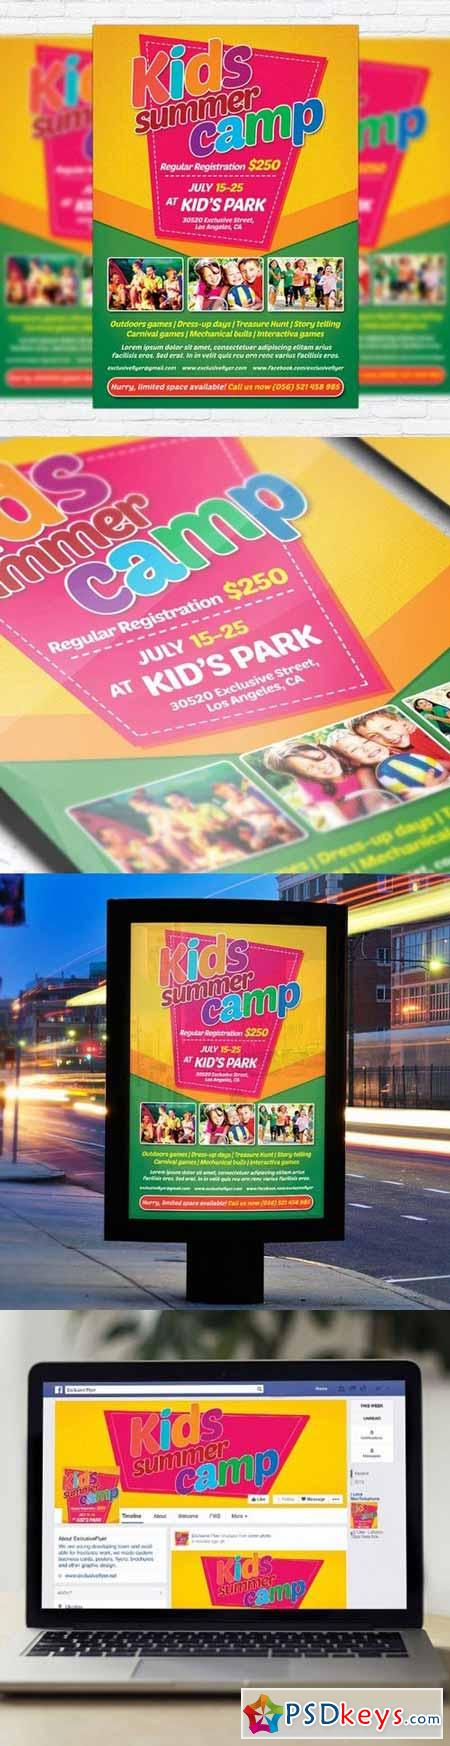 Kids Summer Camp Flyer Psd Template + Facebook Cover » Free